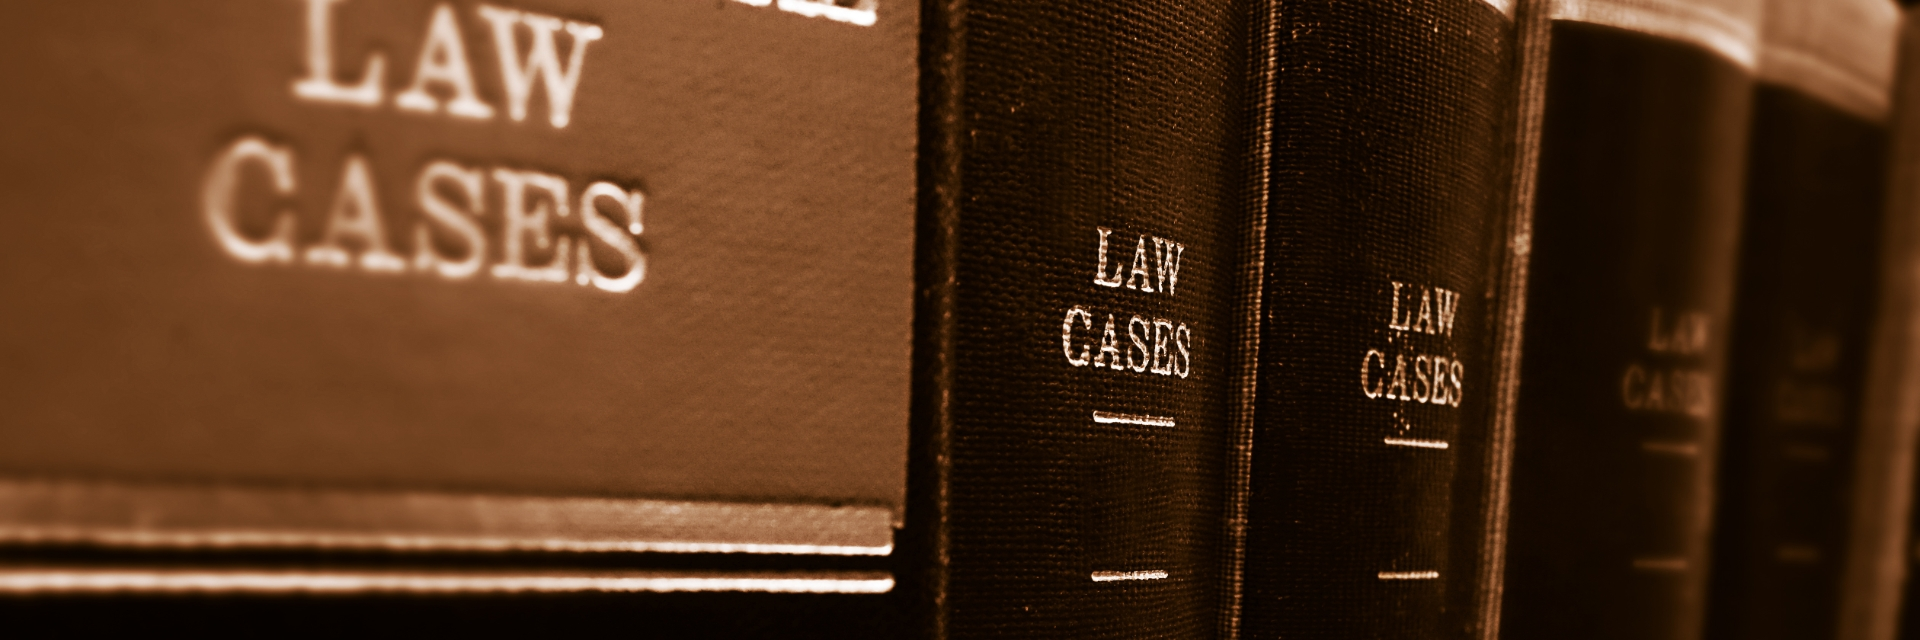 Current Cases and Investigations our Employment Law Firm